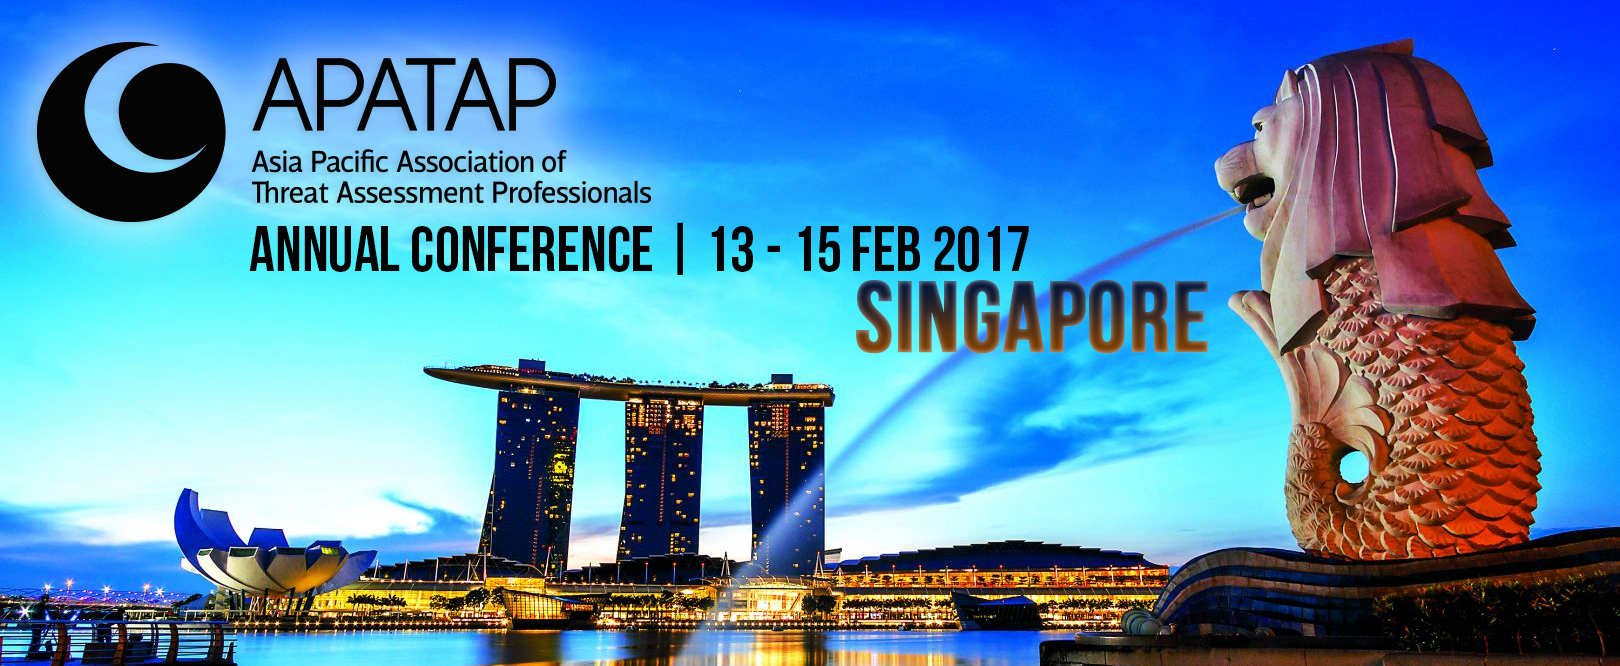 APATAP 2017 Annual Conference